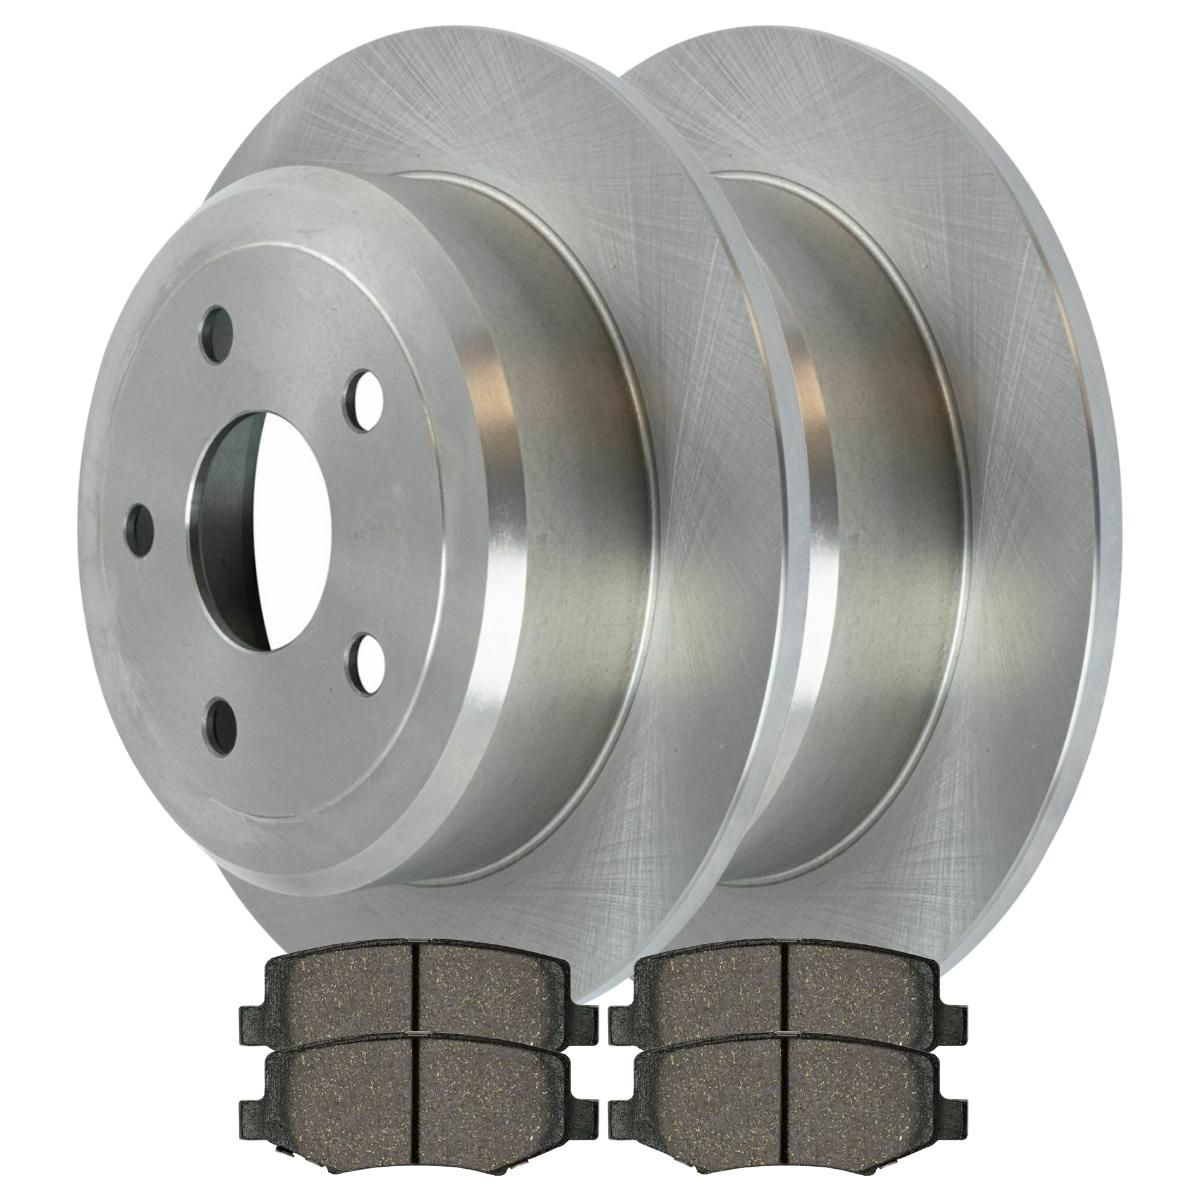 Prime Choice Auto Parts BRKPKG003579 Rear Drilled /& Slotted Rotors with Ceramic Pads Set